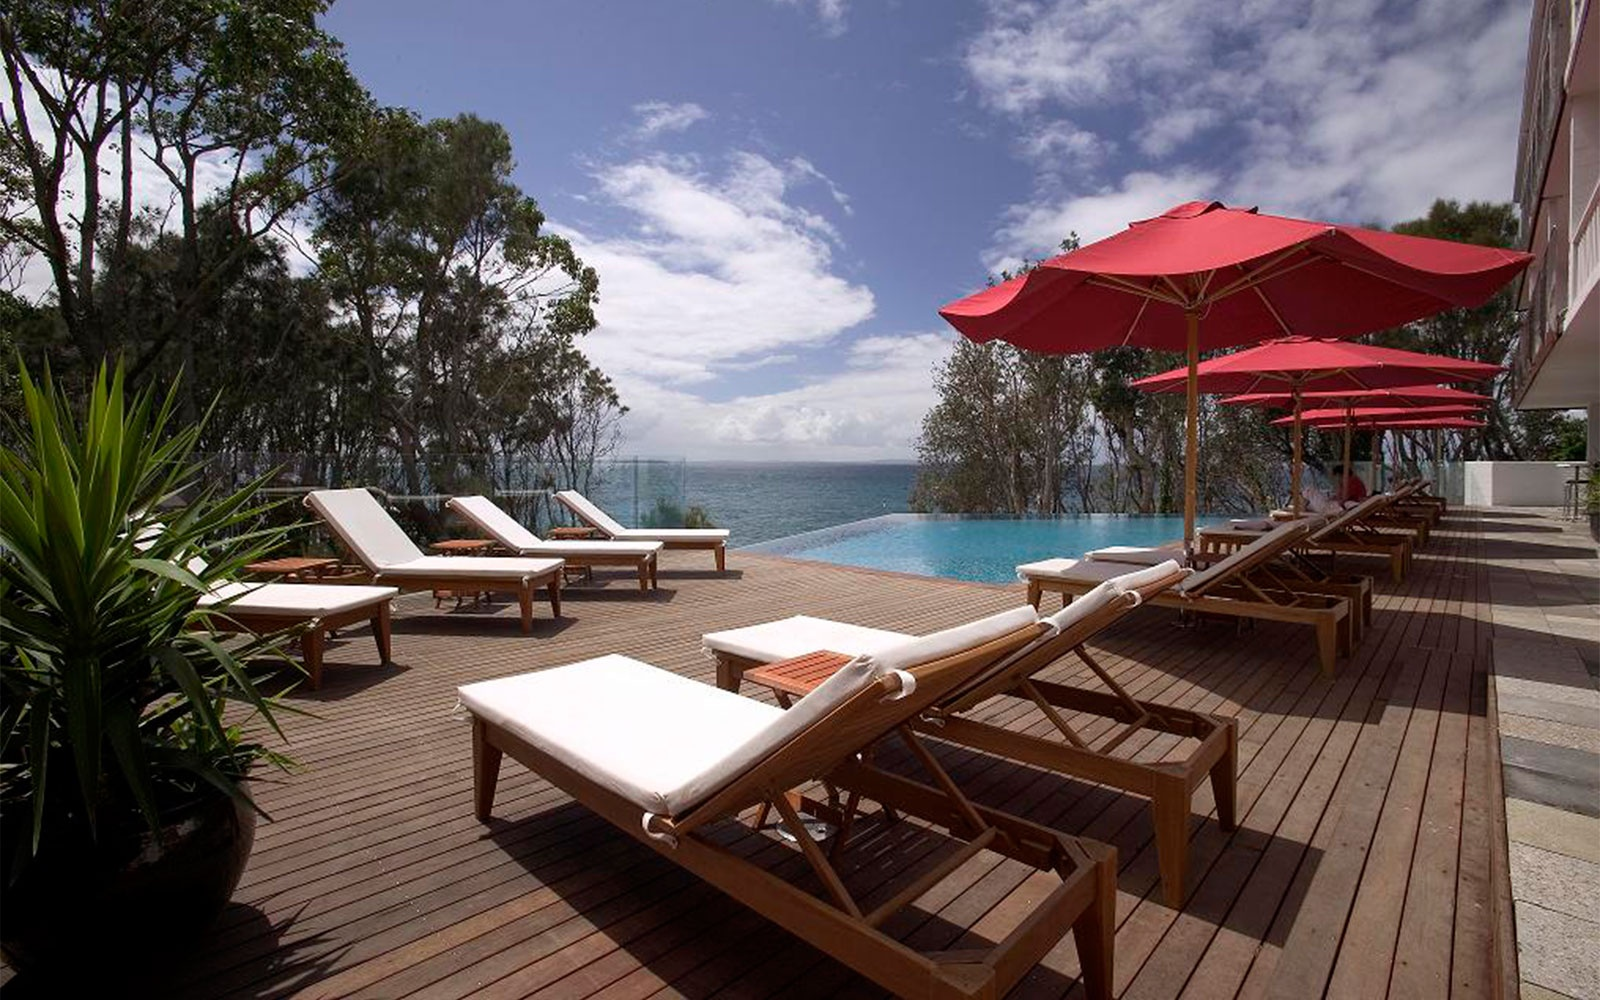 Bannisters Point Lodge New South Wales, Australia